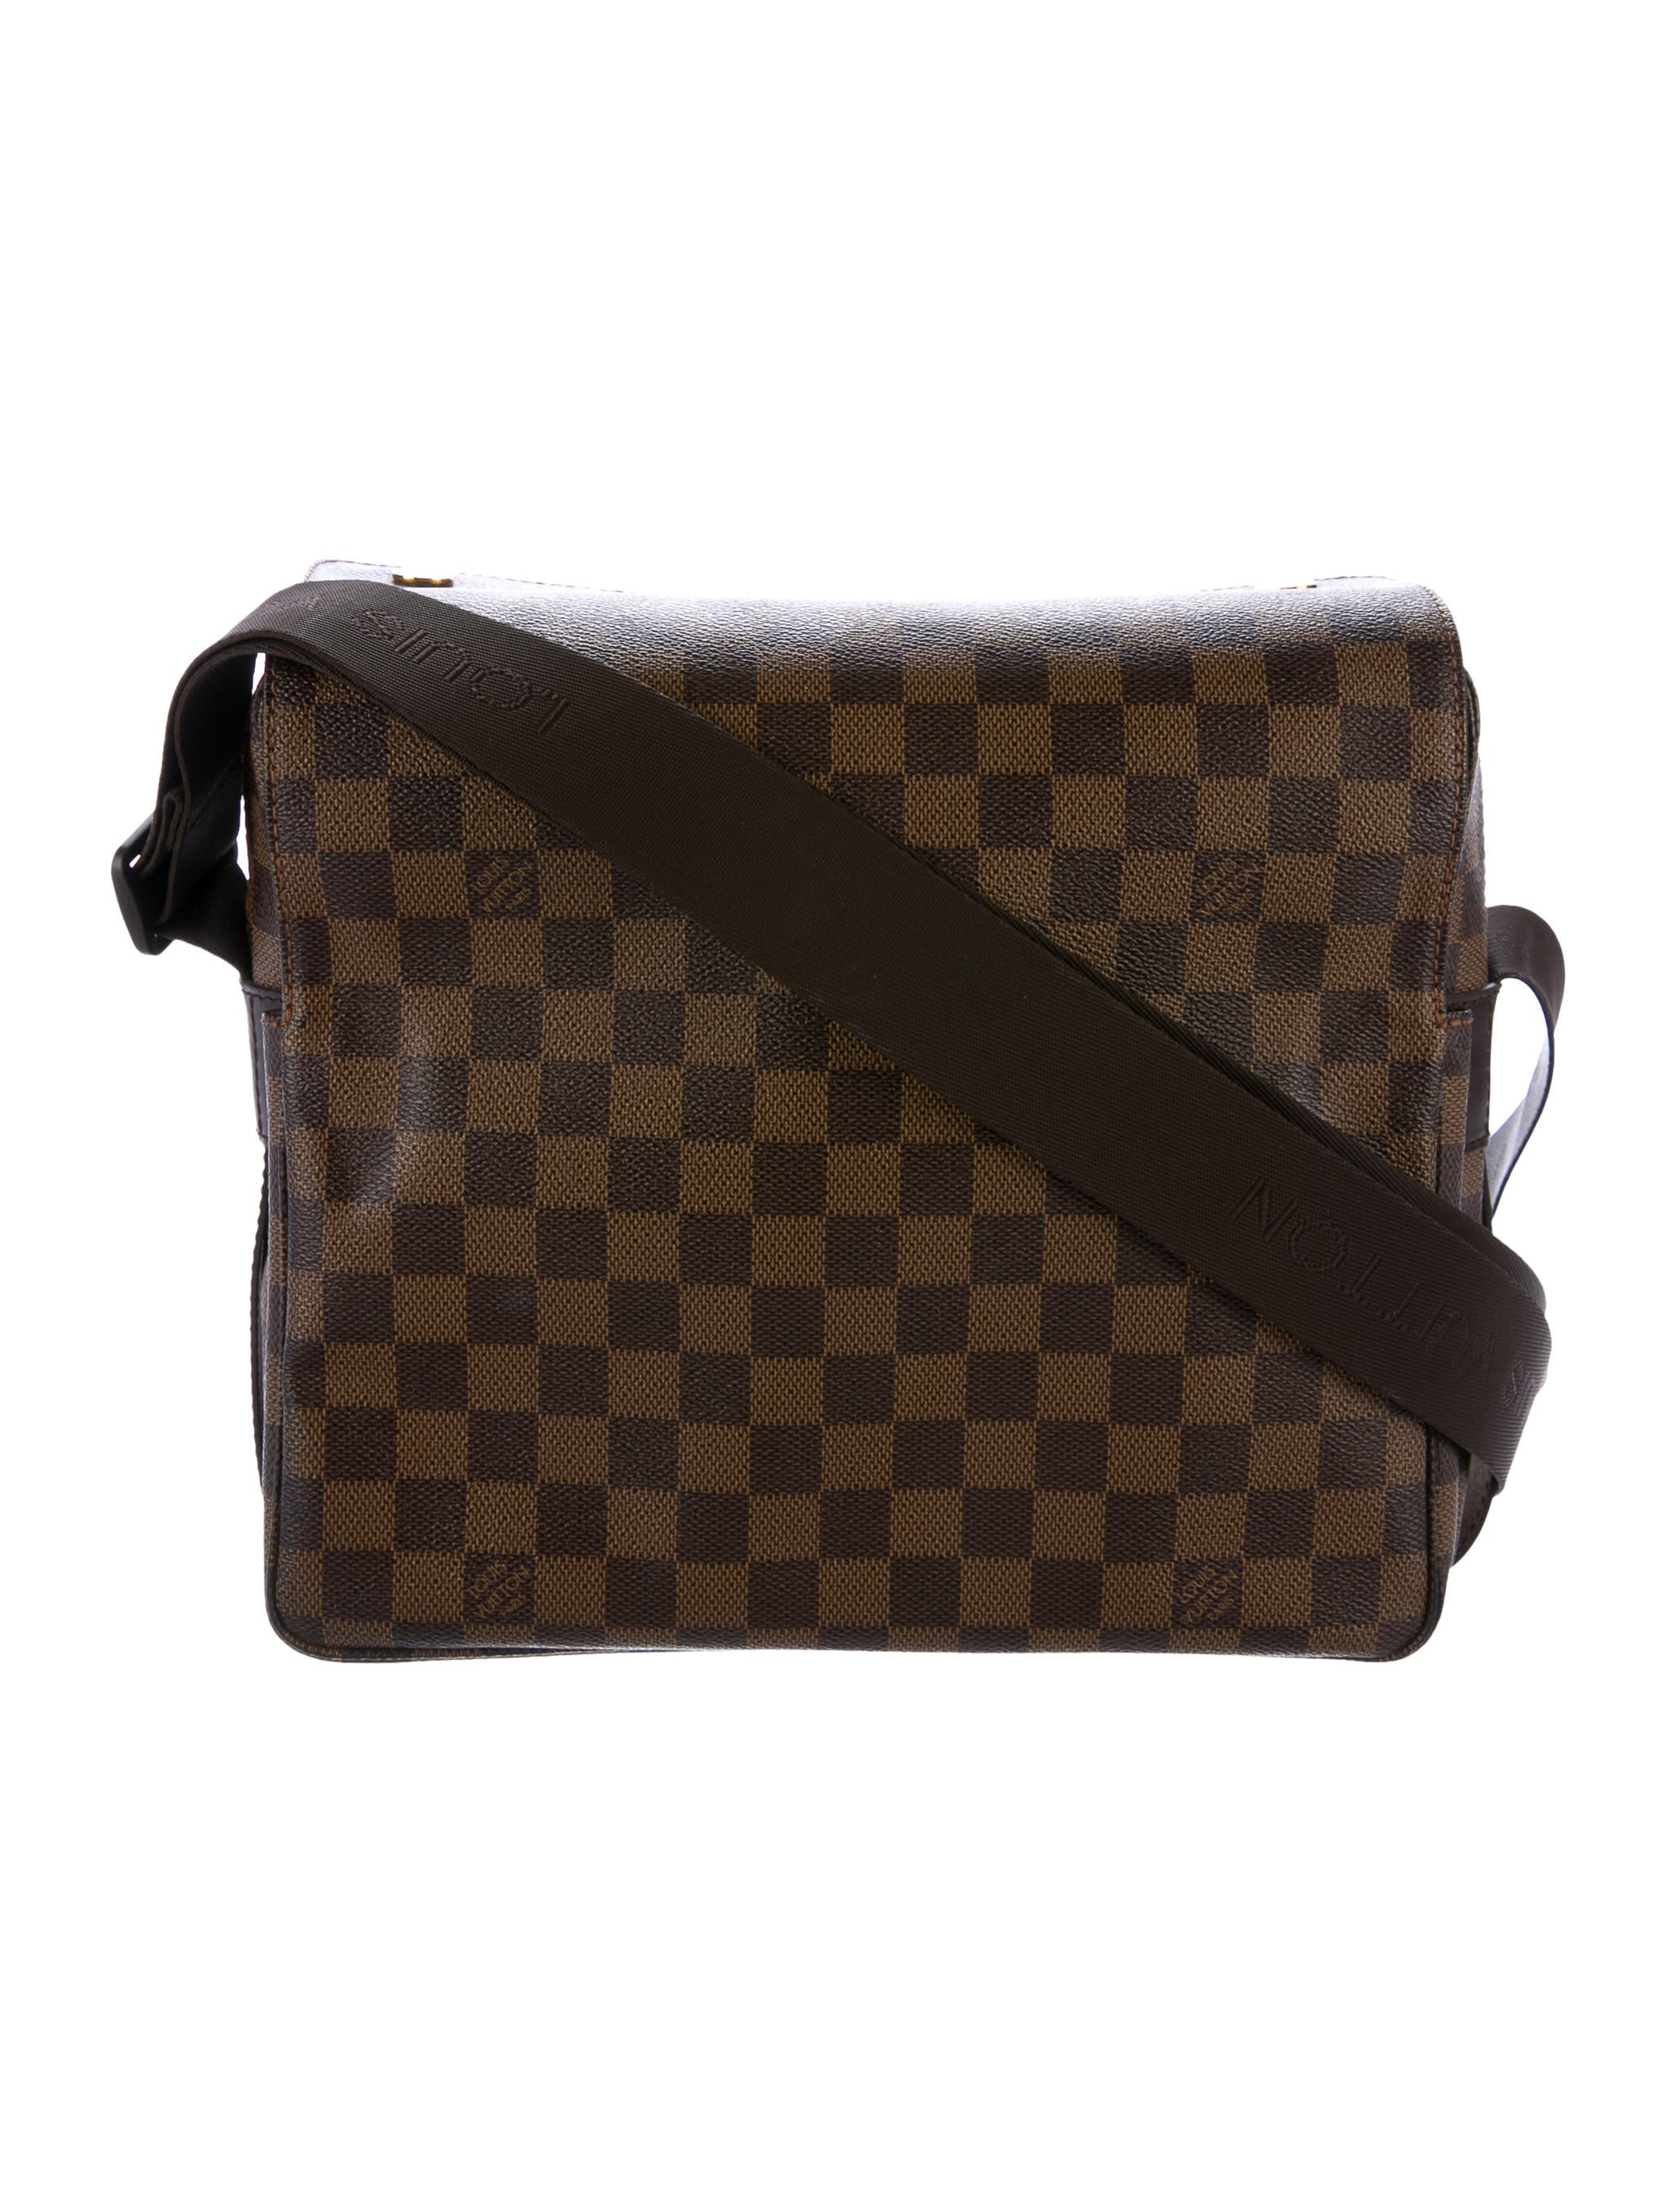 Innovative Louis Vuitton Damier Ebene Naviglio Messenger Bag - Handbags - LOU118232 | The RealReal